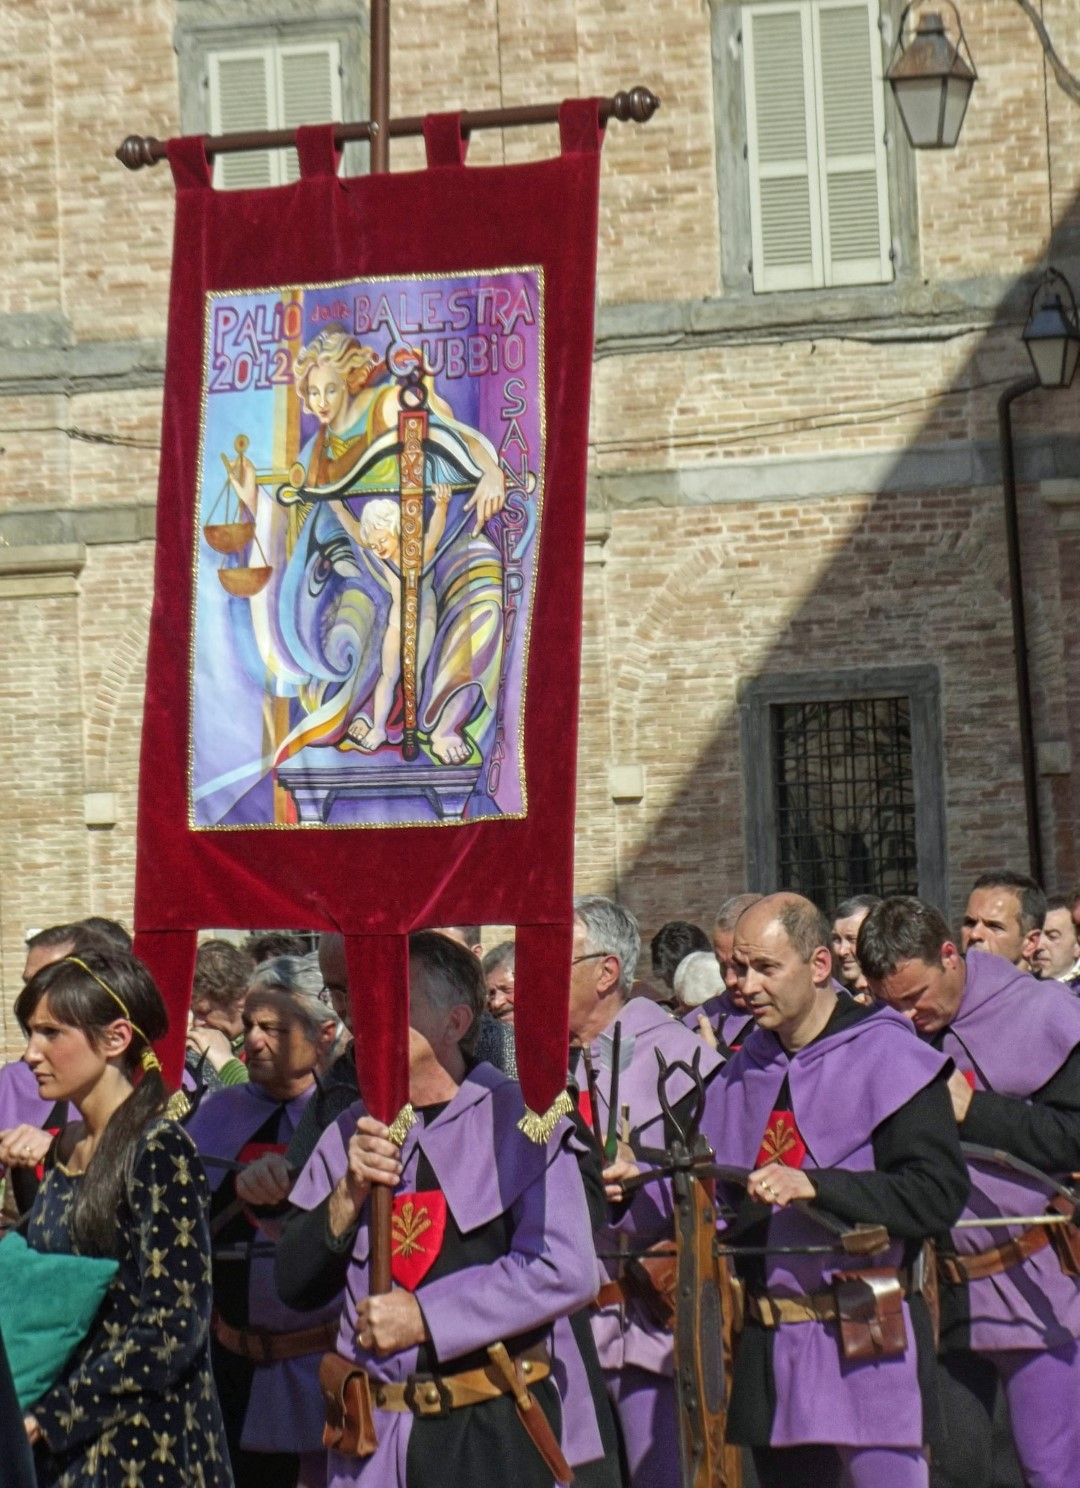 Men in purple and black with large banner